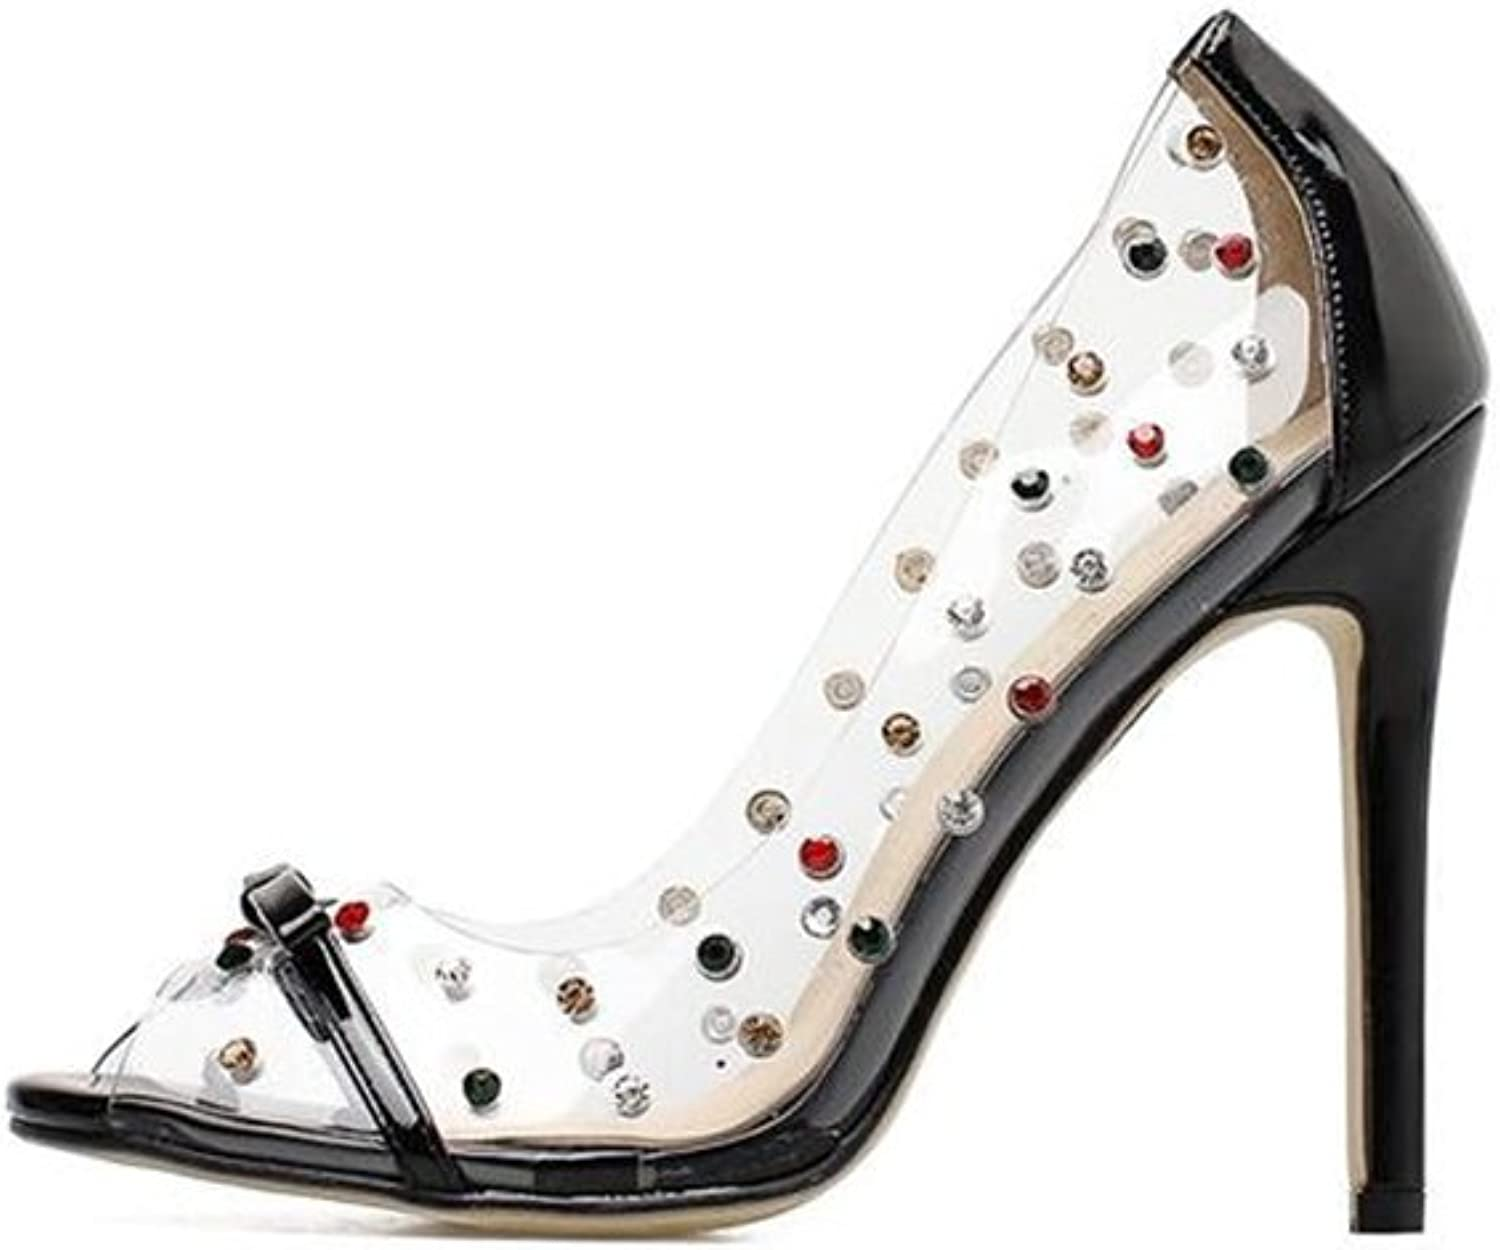 SUNNY Store Women's High Heels Sandals Linear Shape Transparent Upper Square Peep Toes with Strape